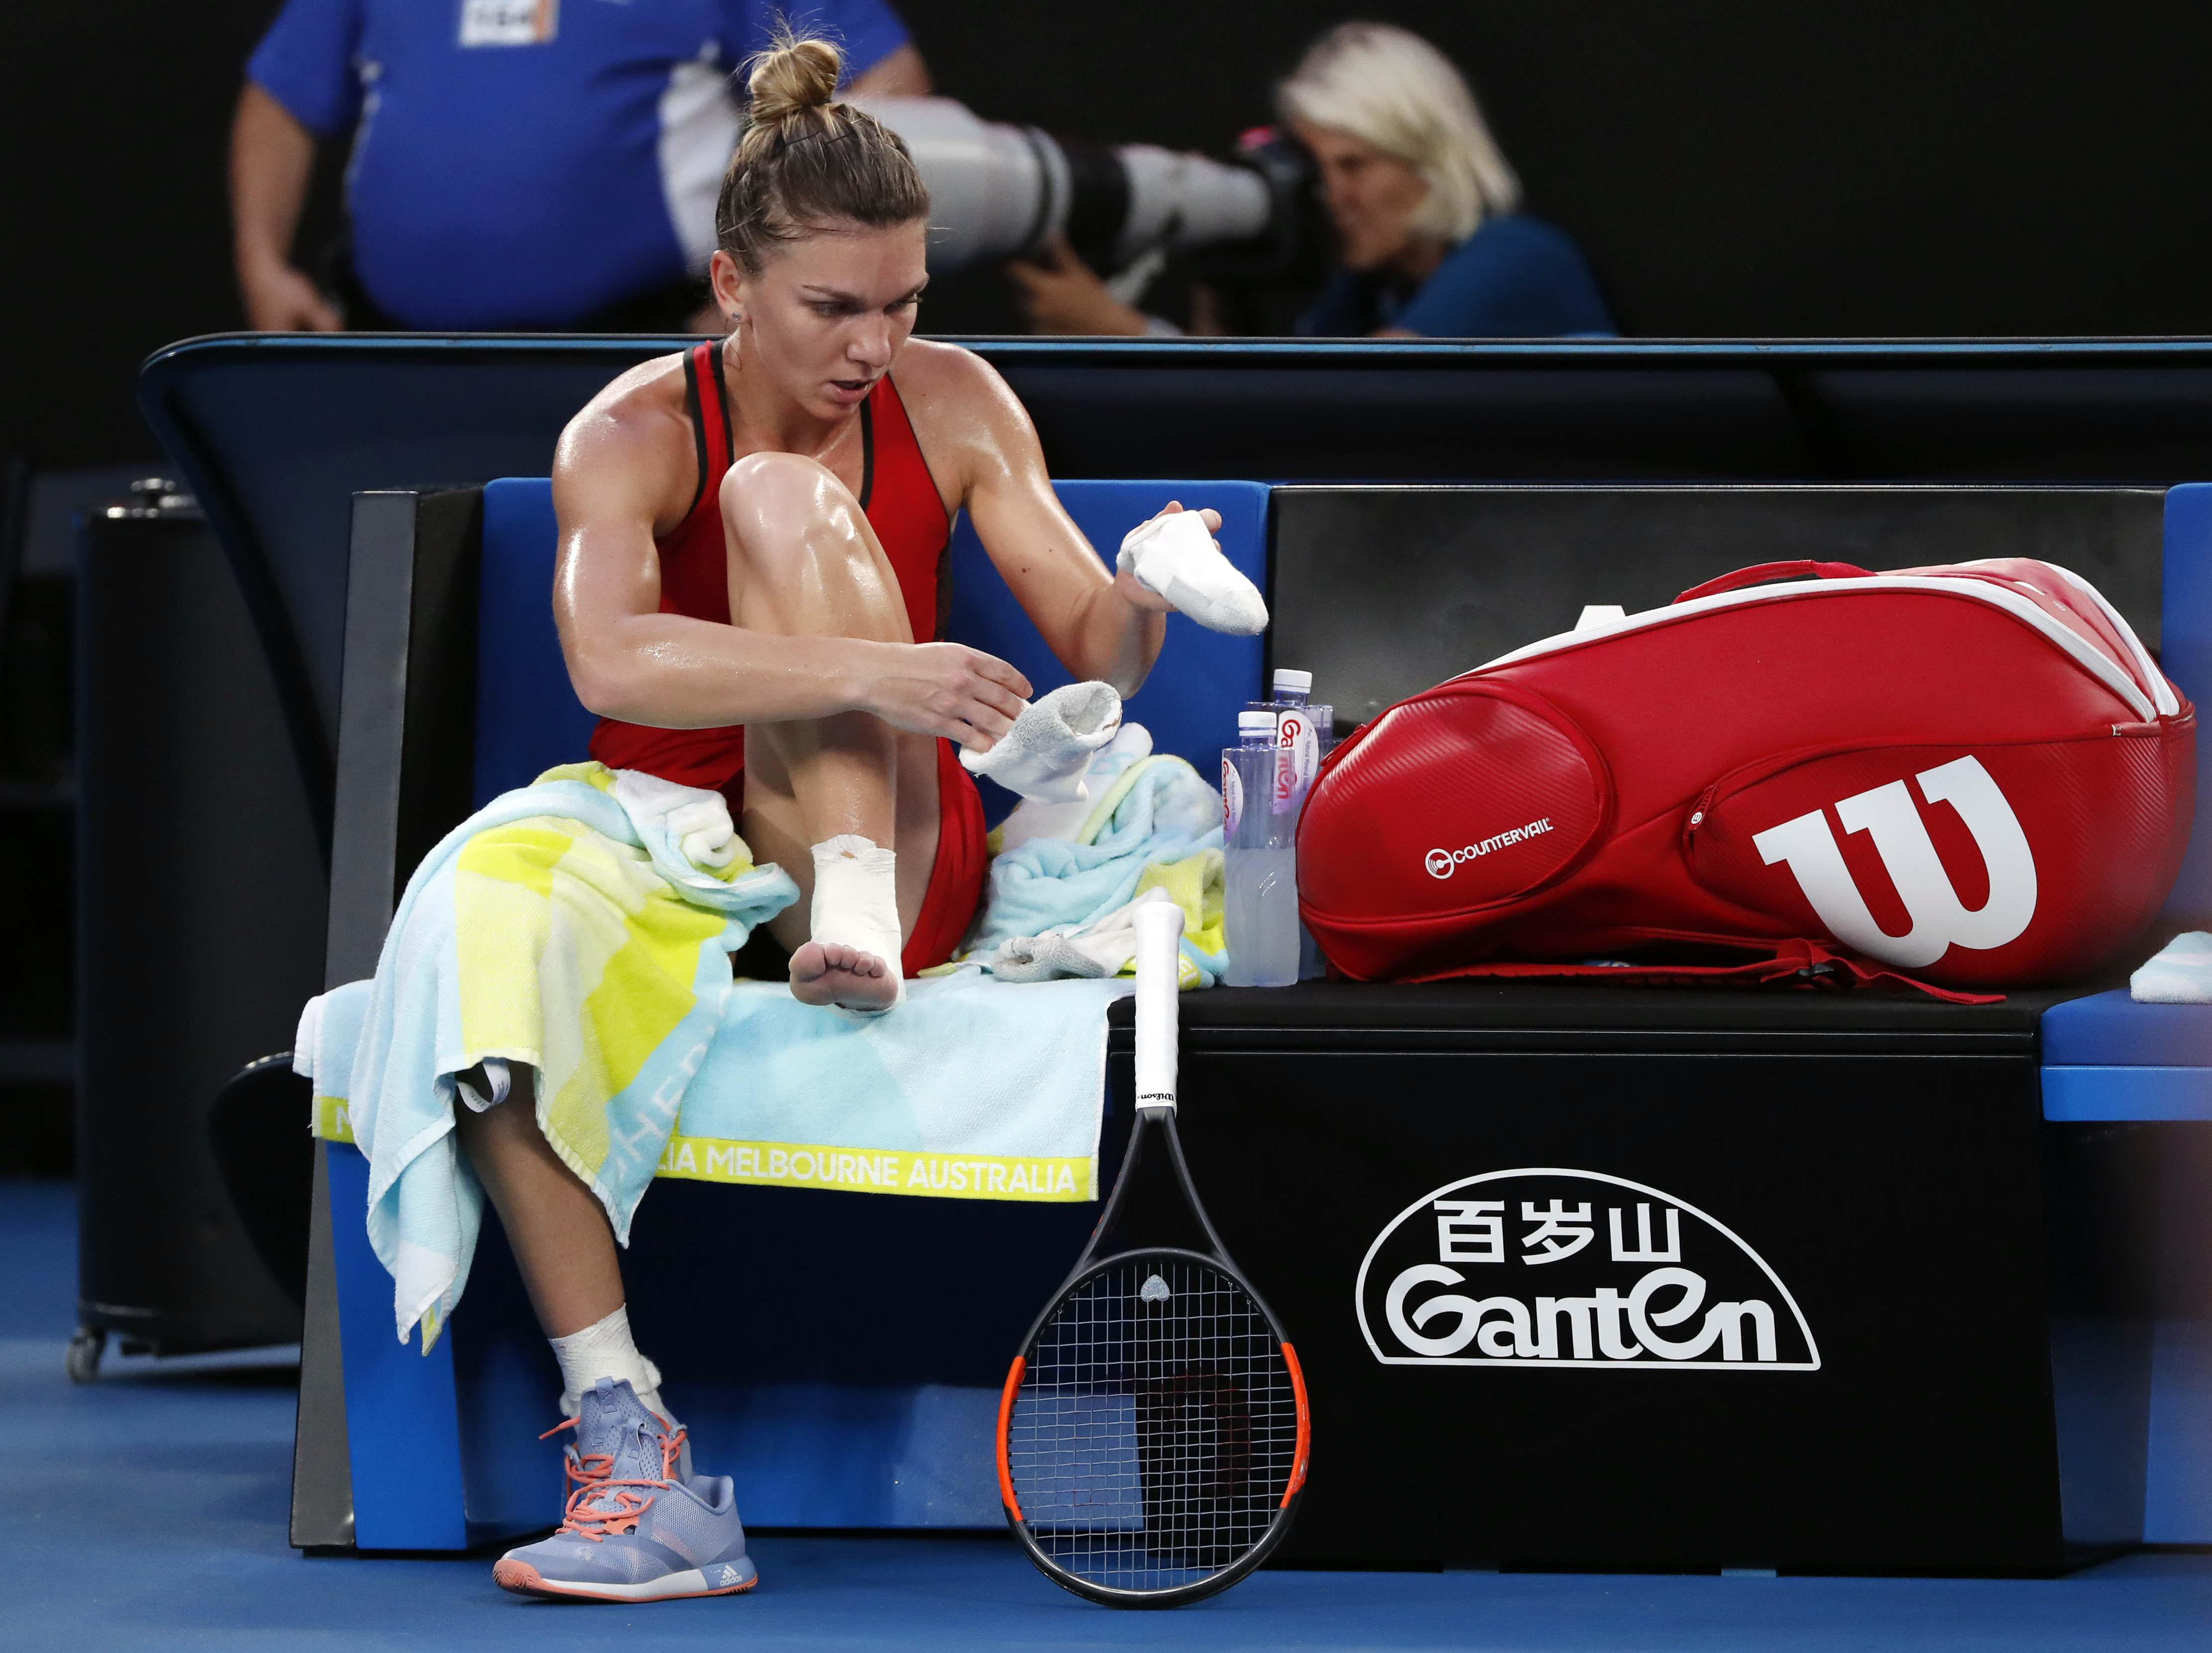 Halep readjusts her foot strapping during a break in play